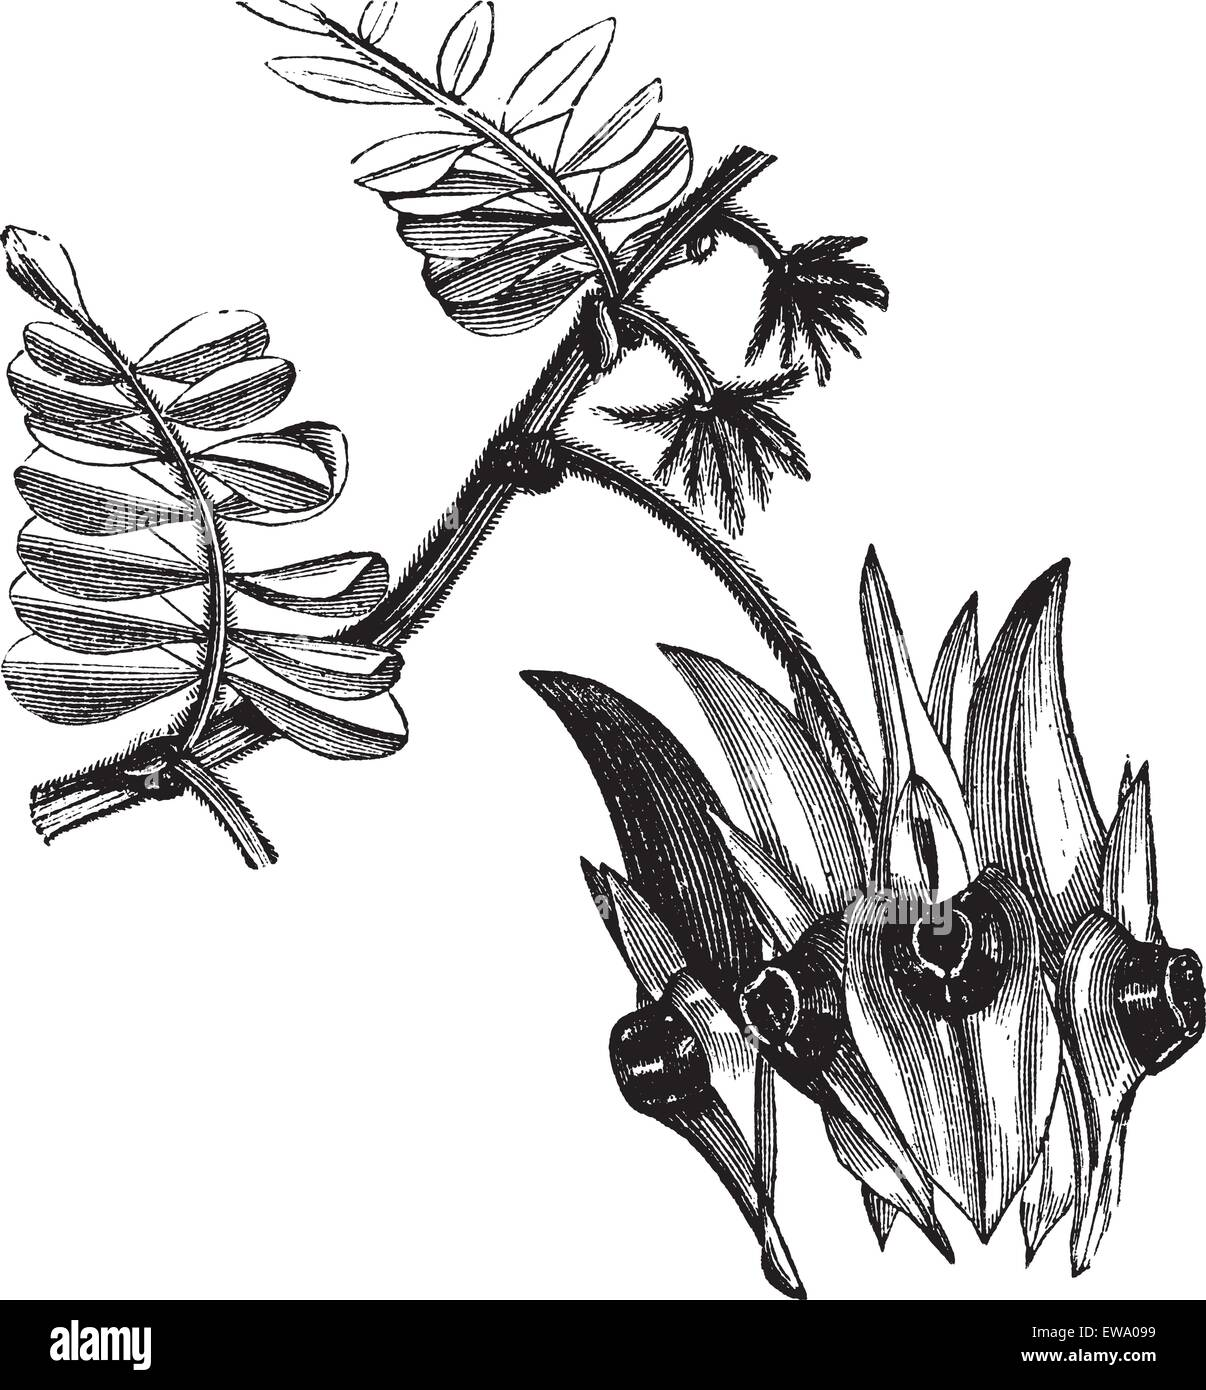 Sturt's Desert Pea or Swainsona formosa, vintage engraving. Old engraved illustration of Swainsona formosa showing - Stock Vector